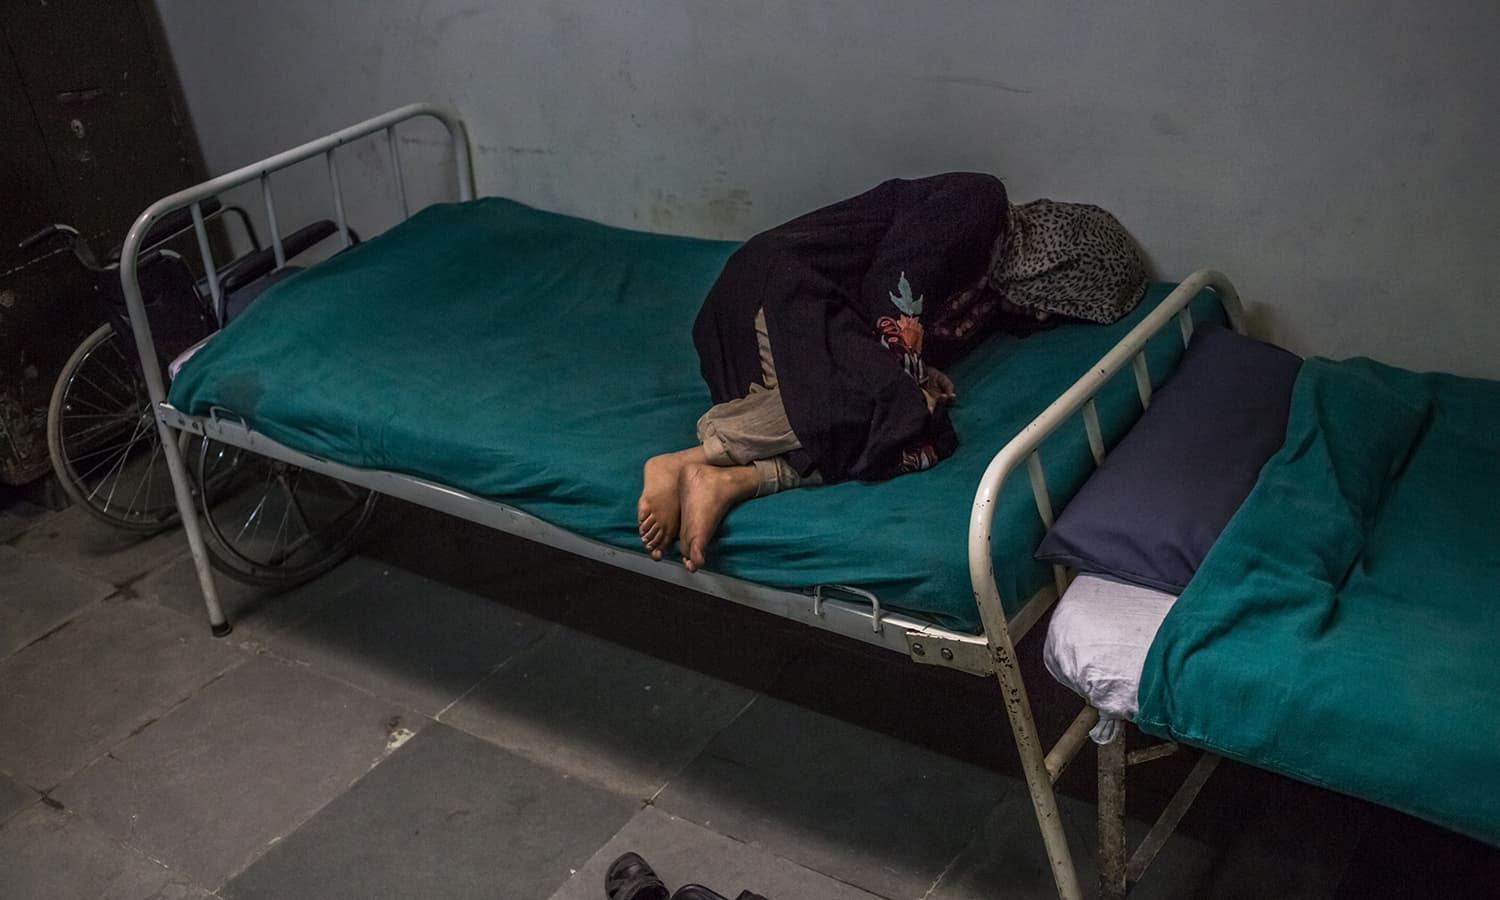 Patient Masrat Naz, 45, and who is suffering from symptoms of schizophrenia, lies on a bed as she periodically shouts to medical staff after being brought by relatives to the casualty ward at the Psychiatric Diseases hospital in Srinagar.─AFP